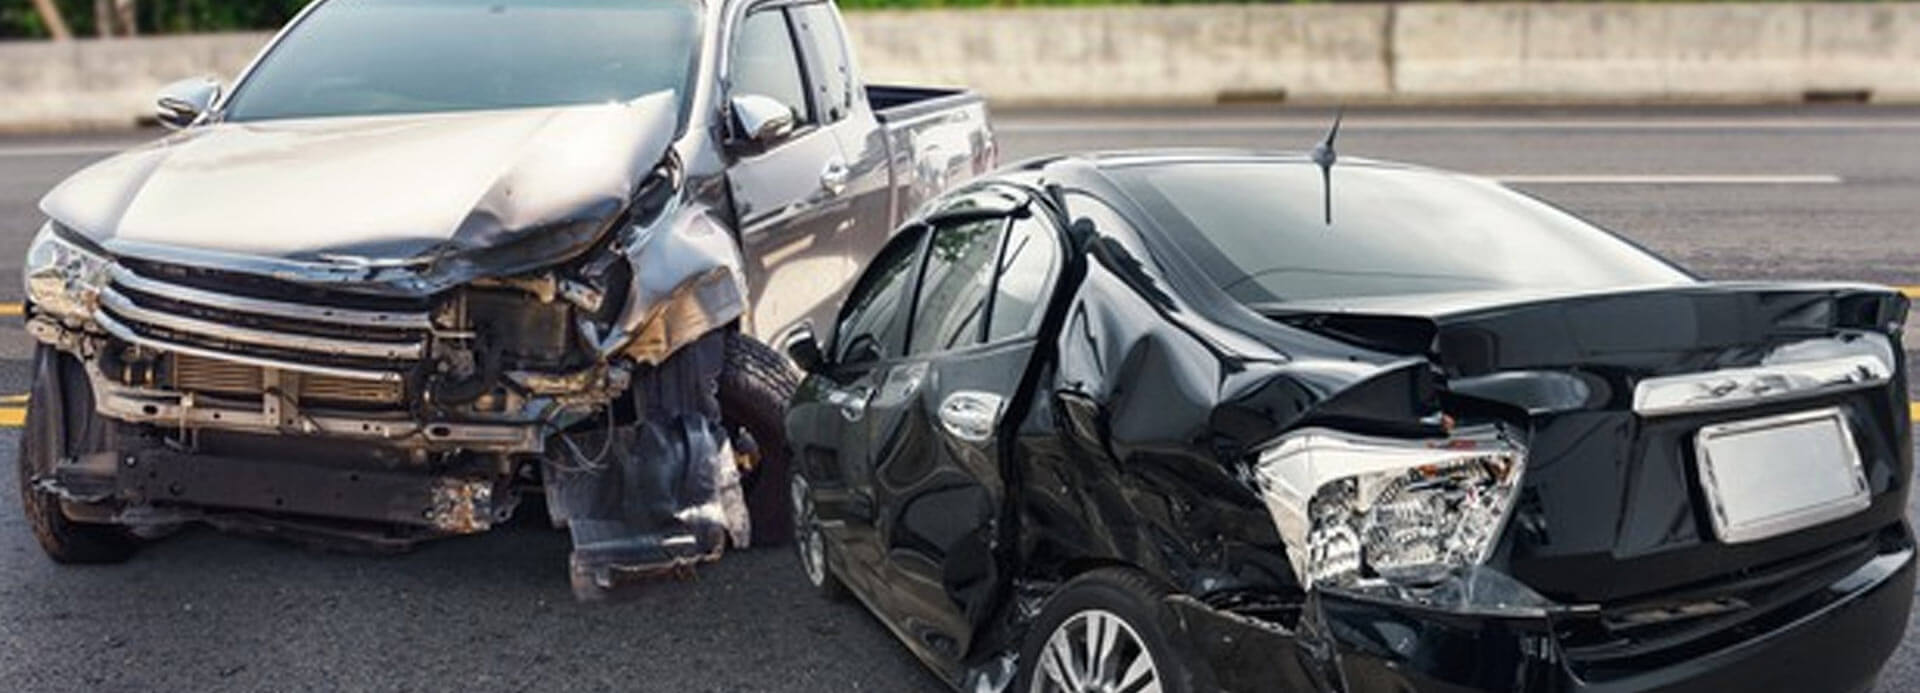 Minor Impact Collisions The Law office of John Vermon Moore